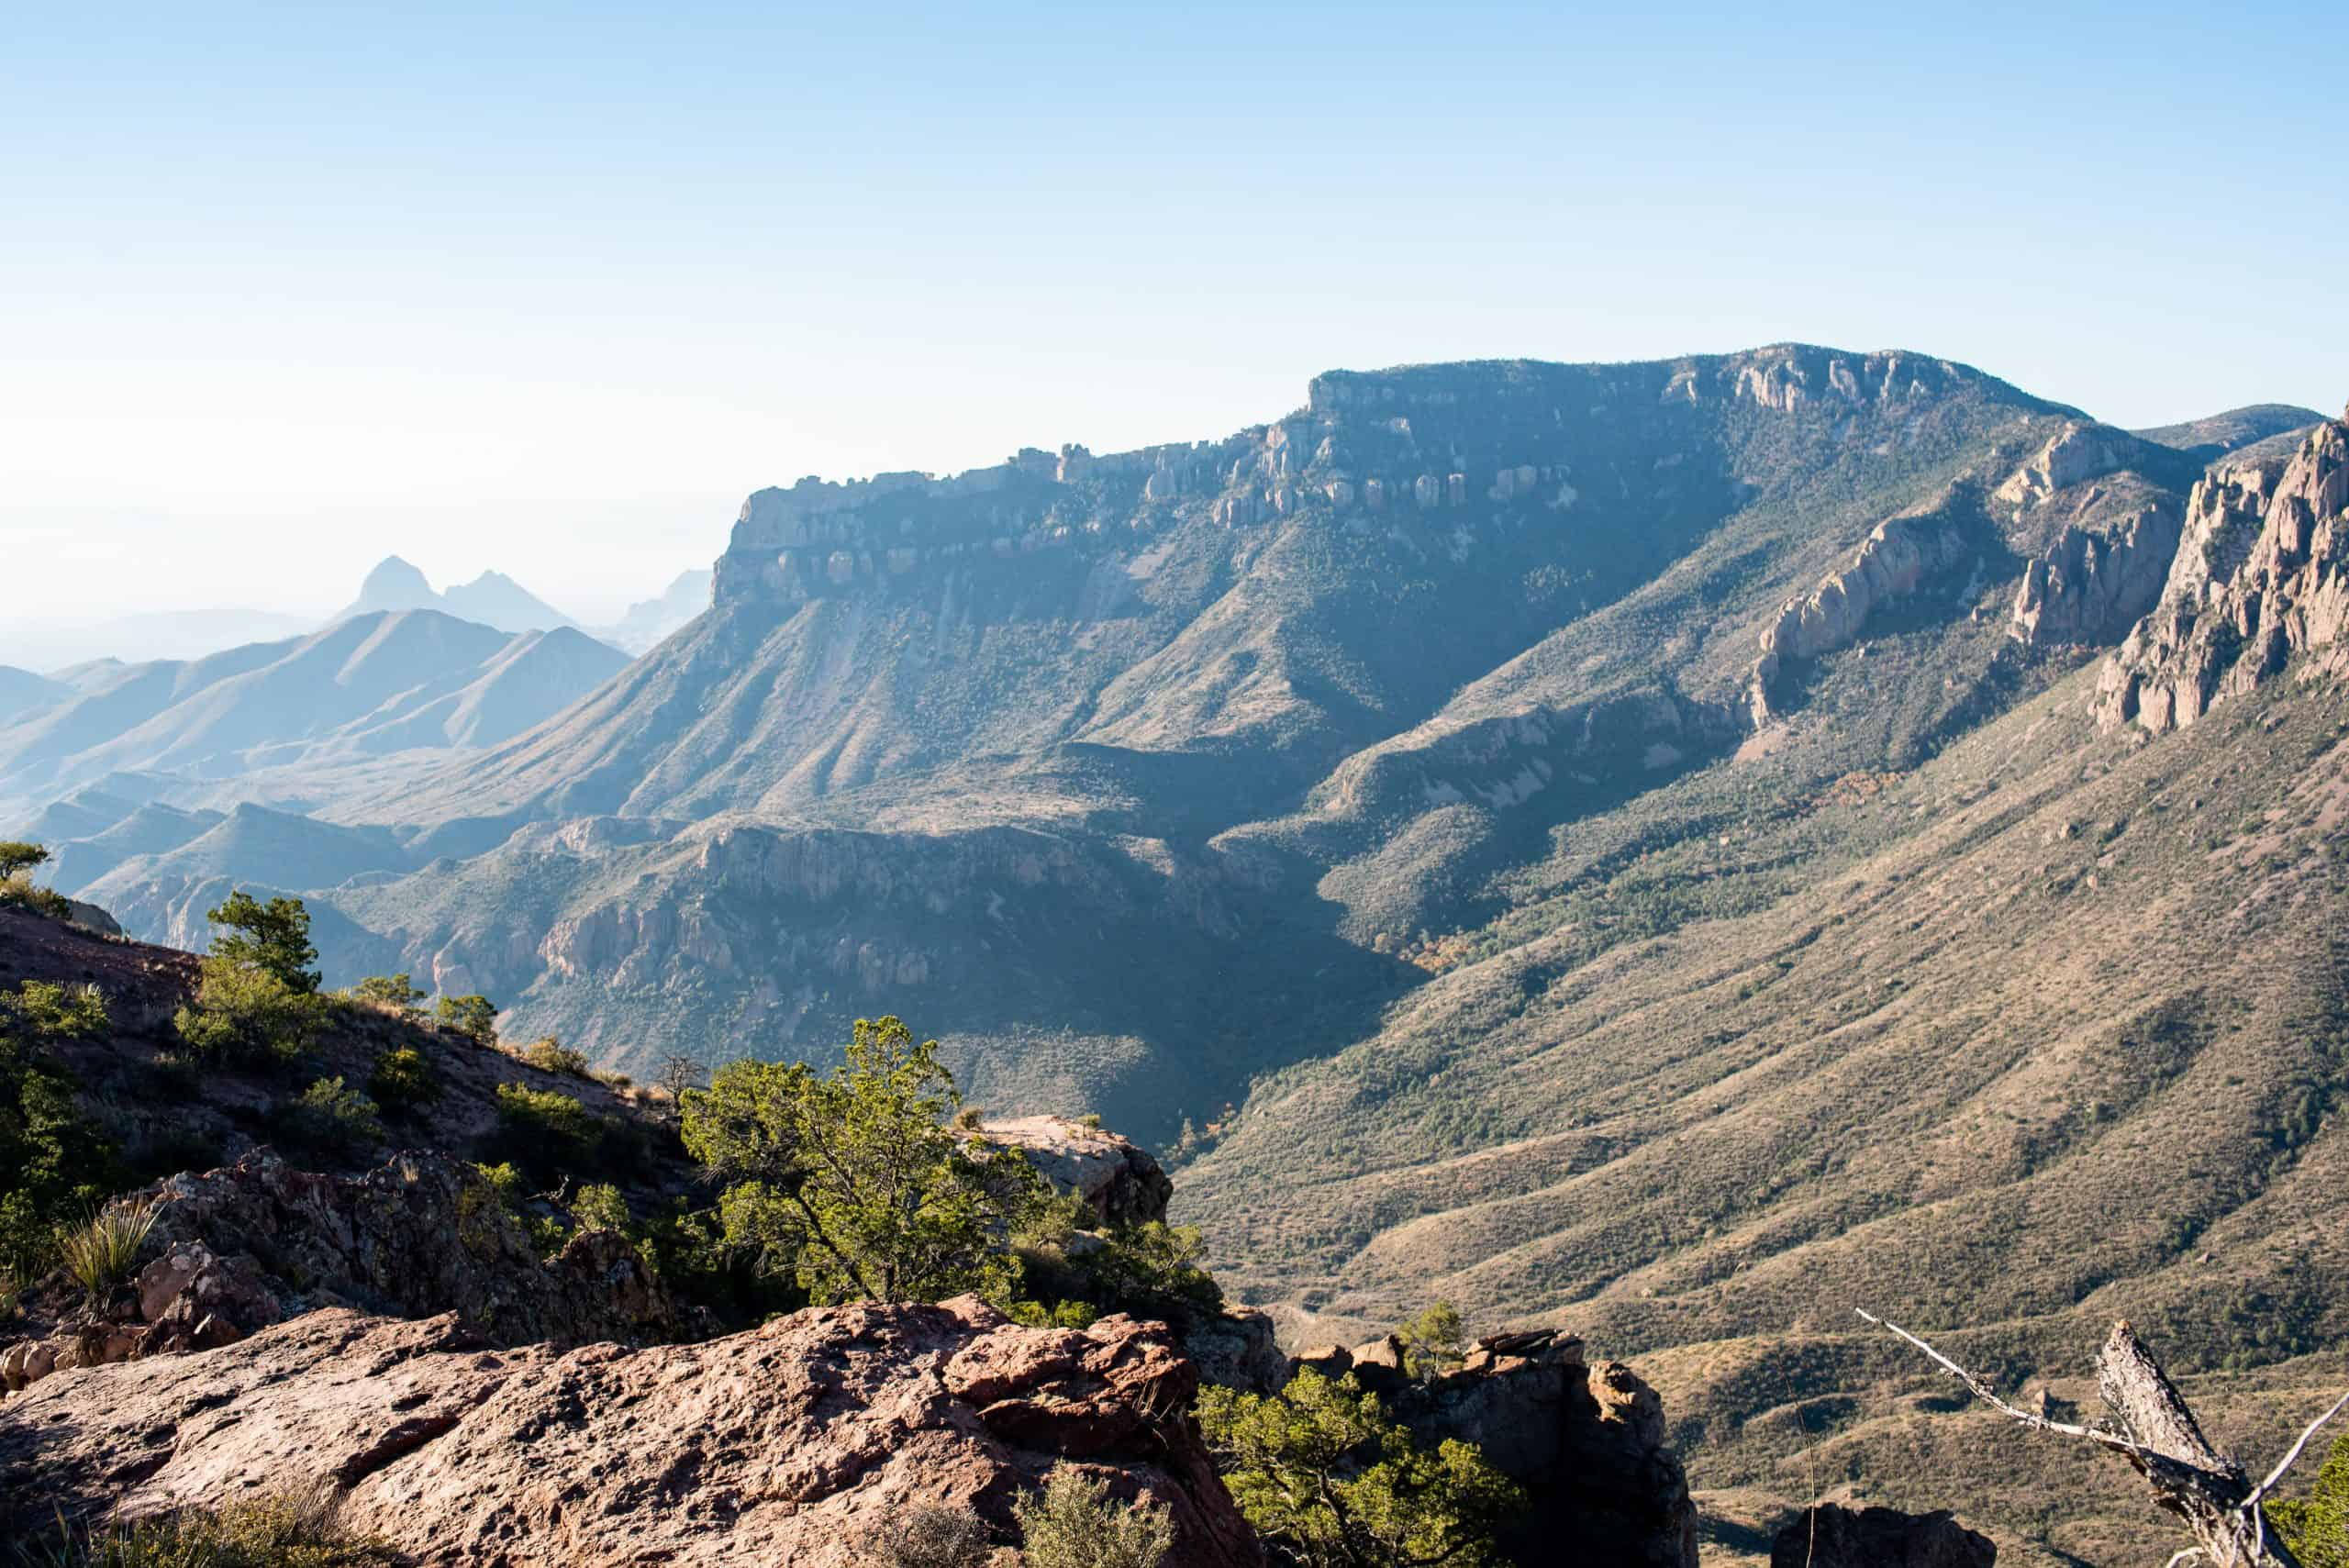 West Texas Road Trip: Marfa and Big Bend